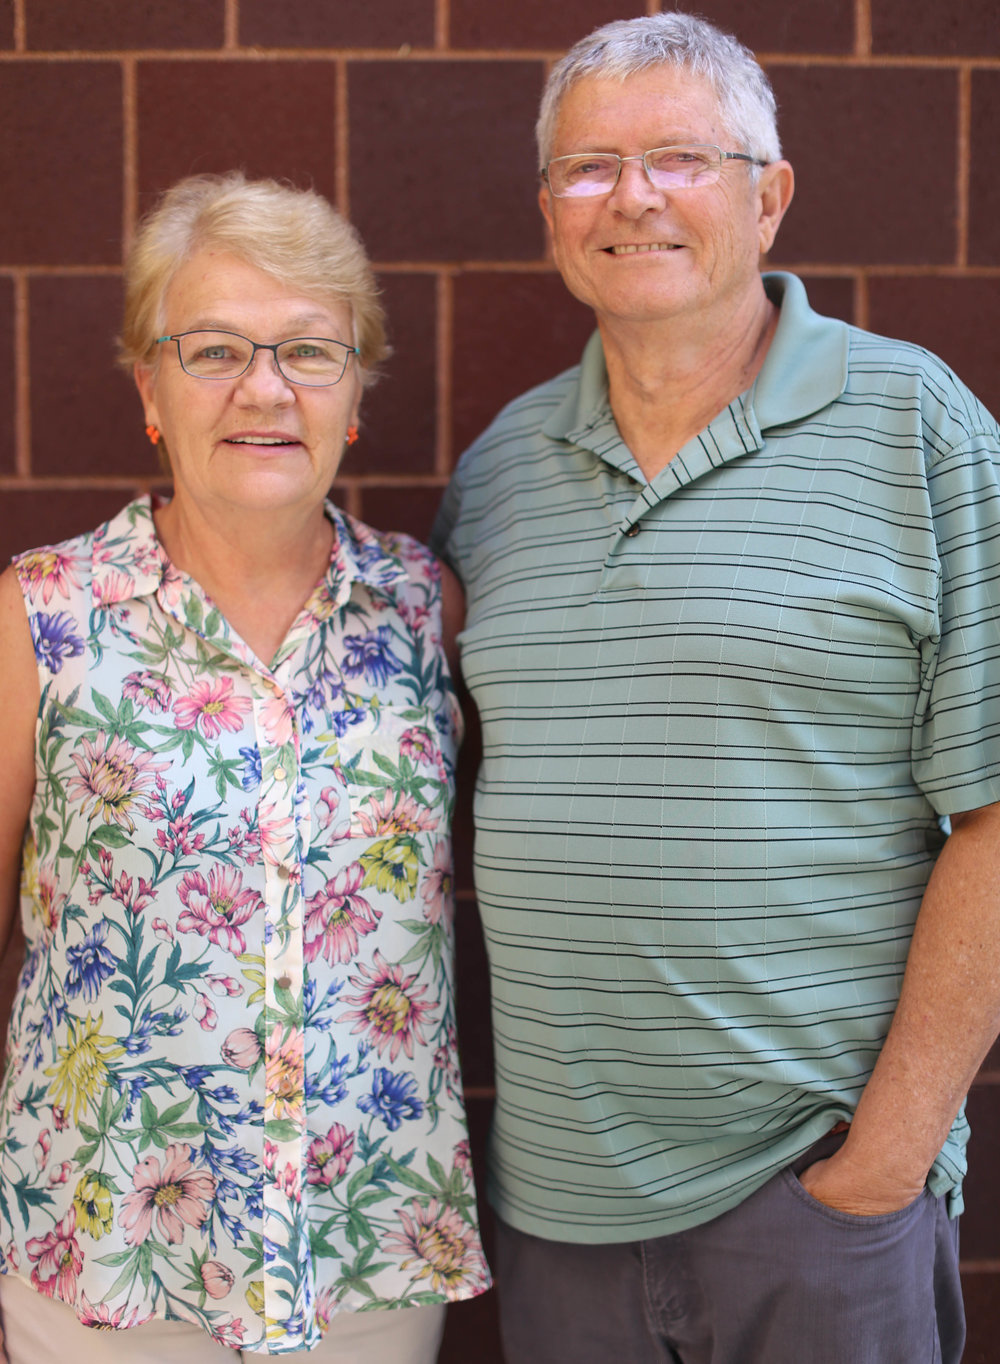 Clive and Wendy Willoughby This group meets in Upper Arlington. The 2nd and 4th Thursday of the month at 7:00pm Email Wendy for directions:wendymwilloughby@gmail.com